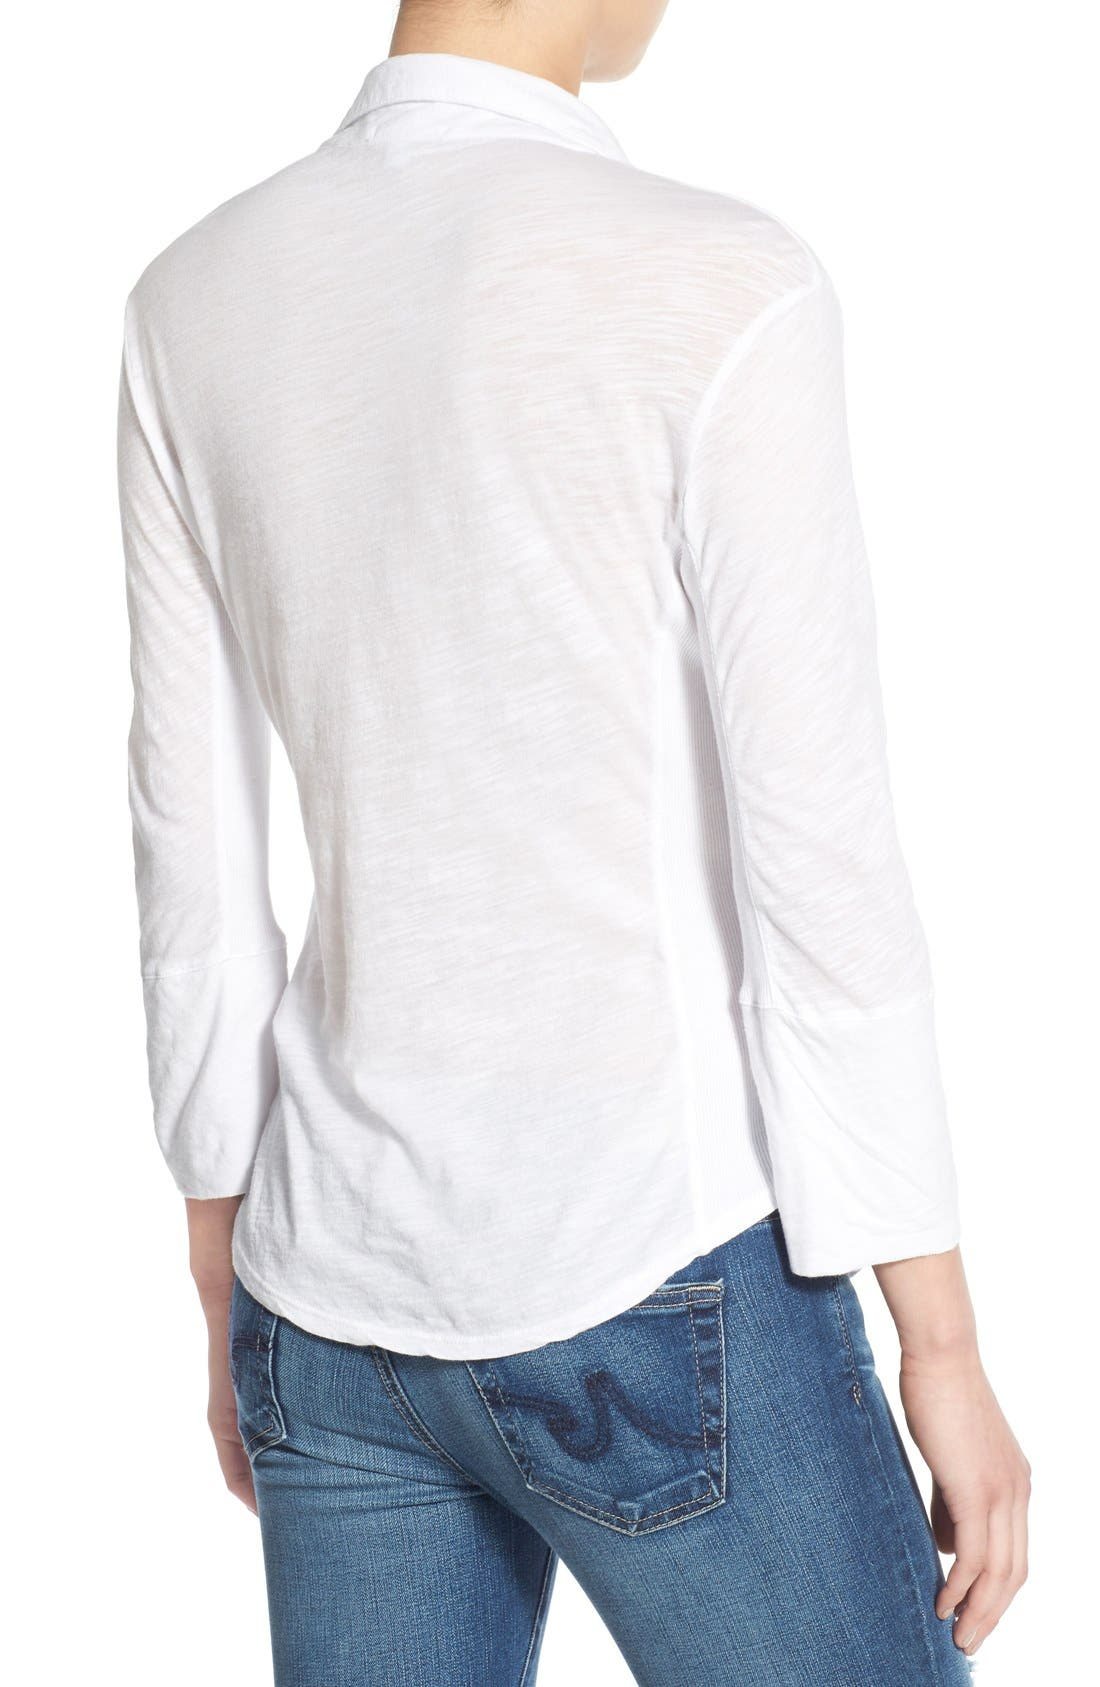 Alternate Image 2  - James Perse Sheer Slub Panel Shirt